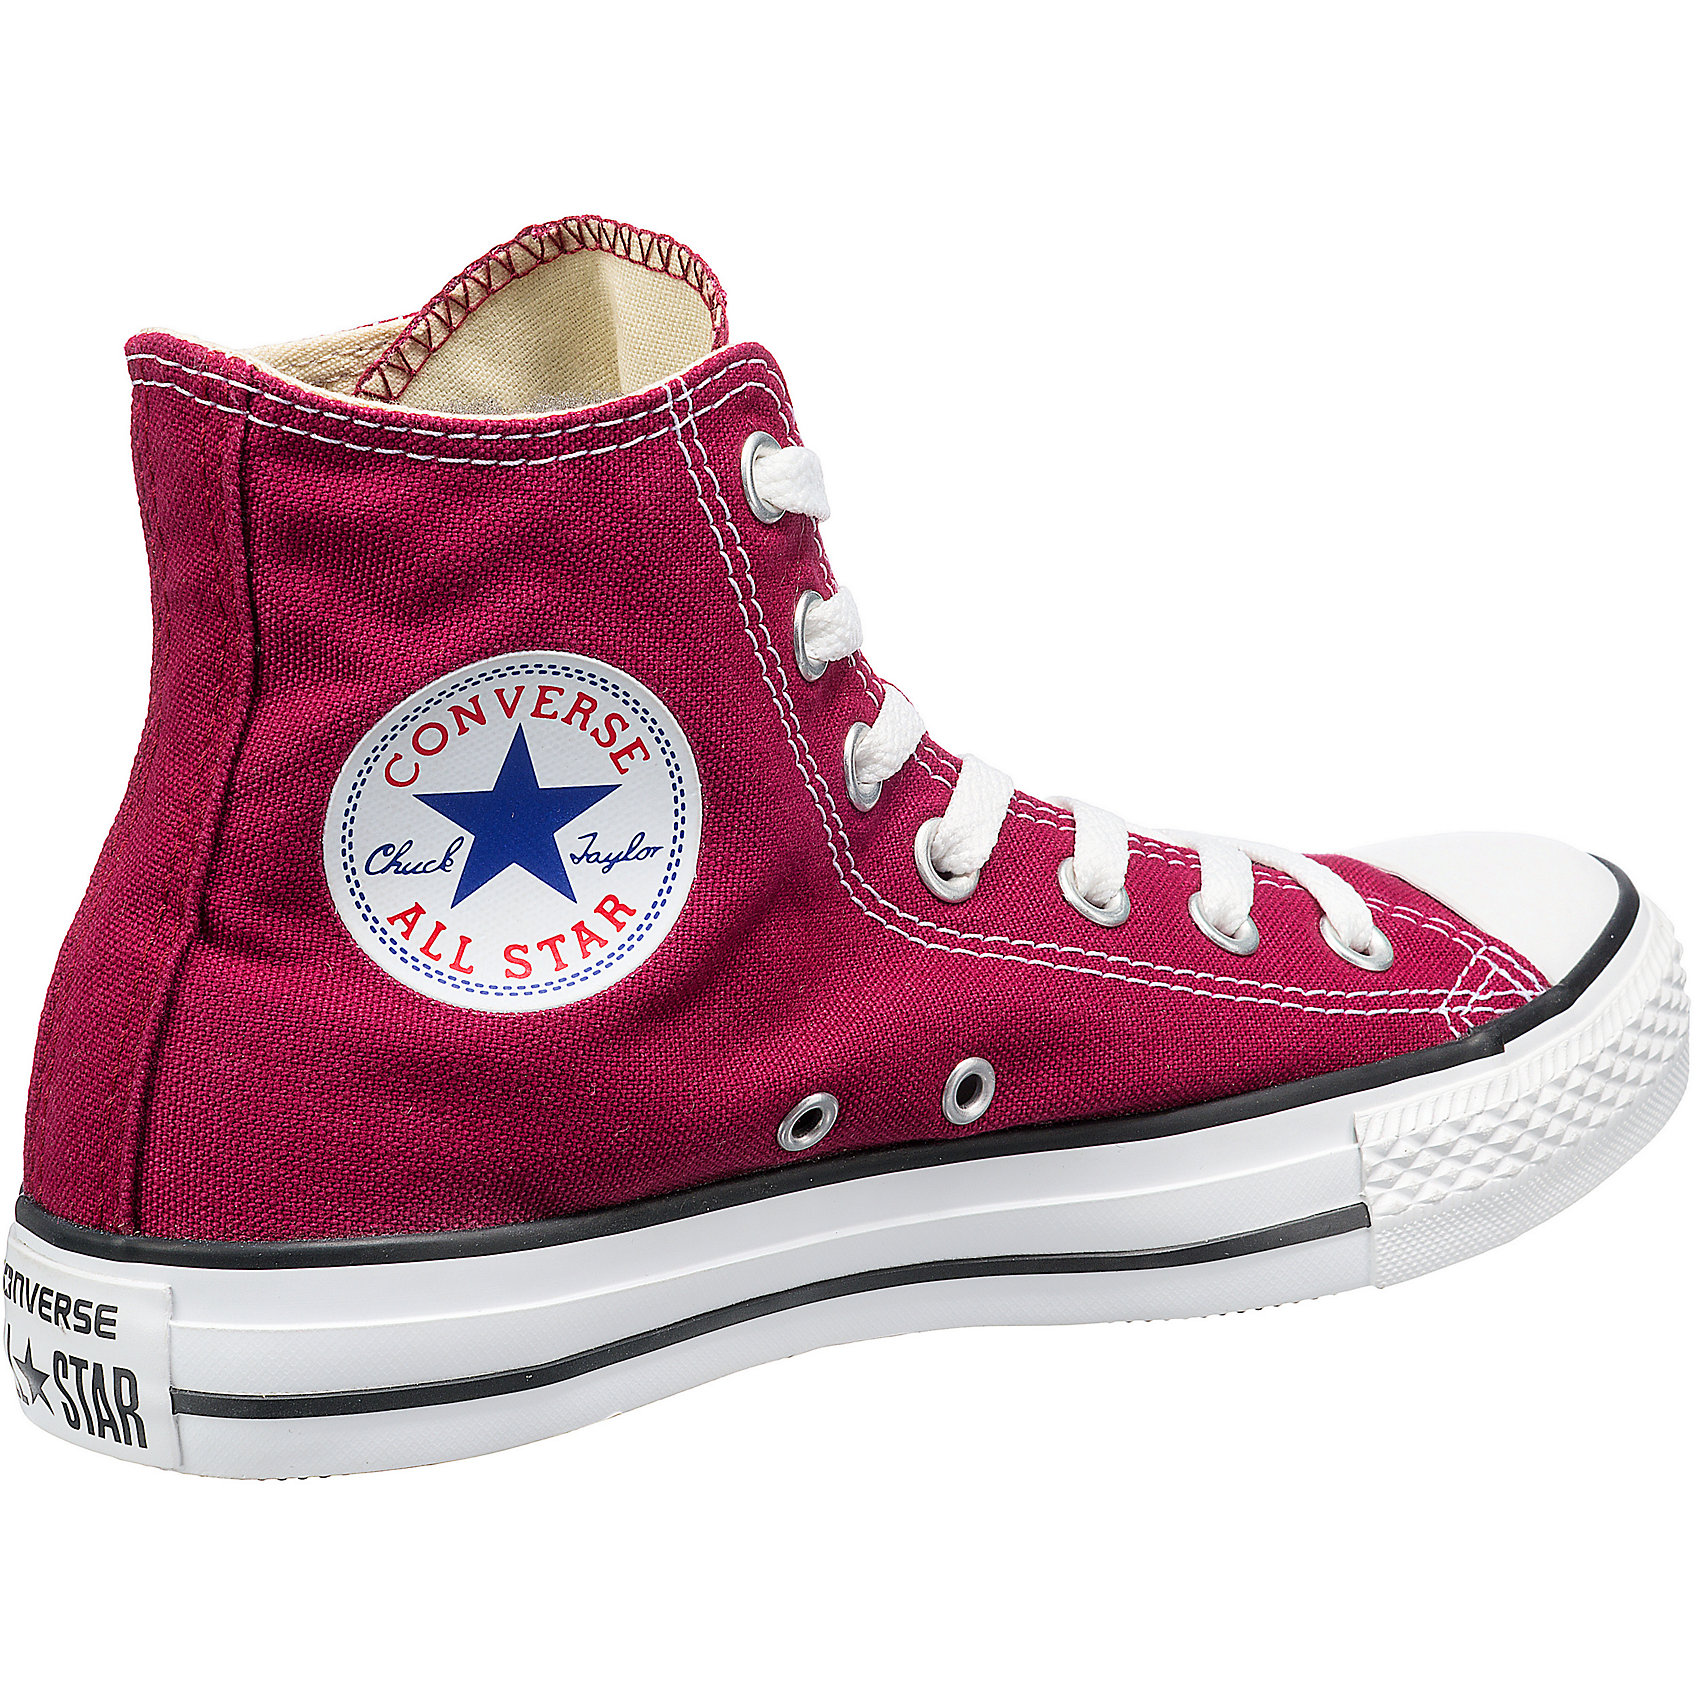 Neu Taylor CONVERSE Chuck Taylor Neu All Star High Sneakers 5703259 68354d